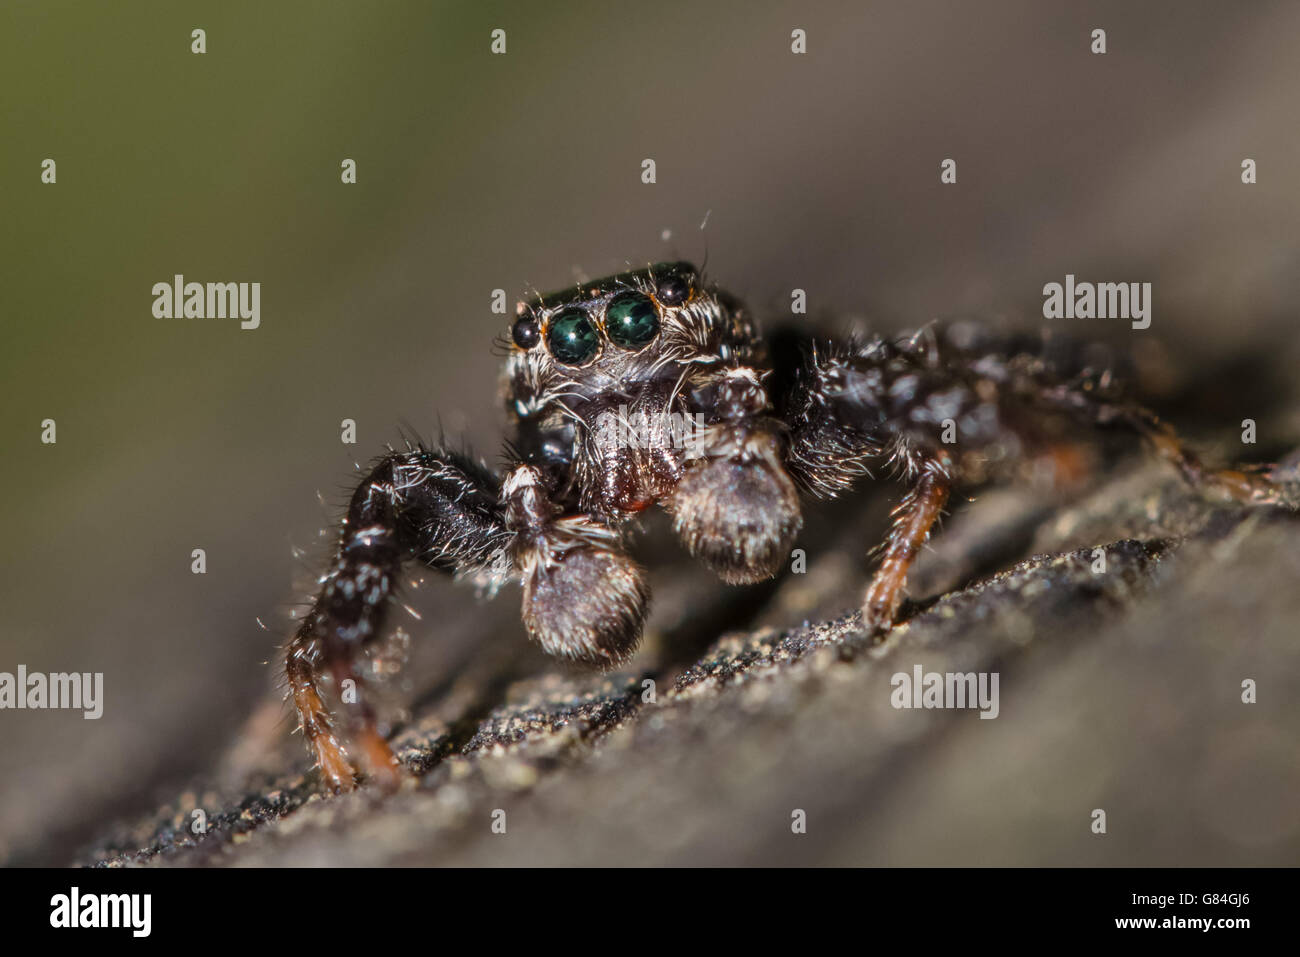 Fencepost jumping spider - Marpissa muscosa - close-up (male). - Stock Image